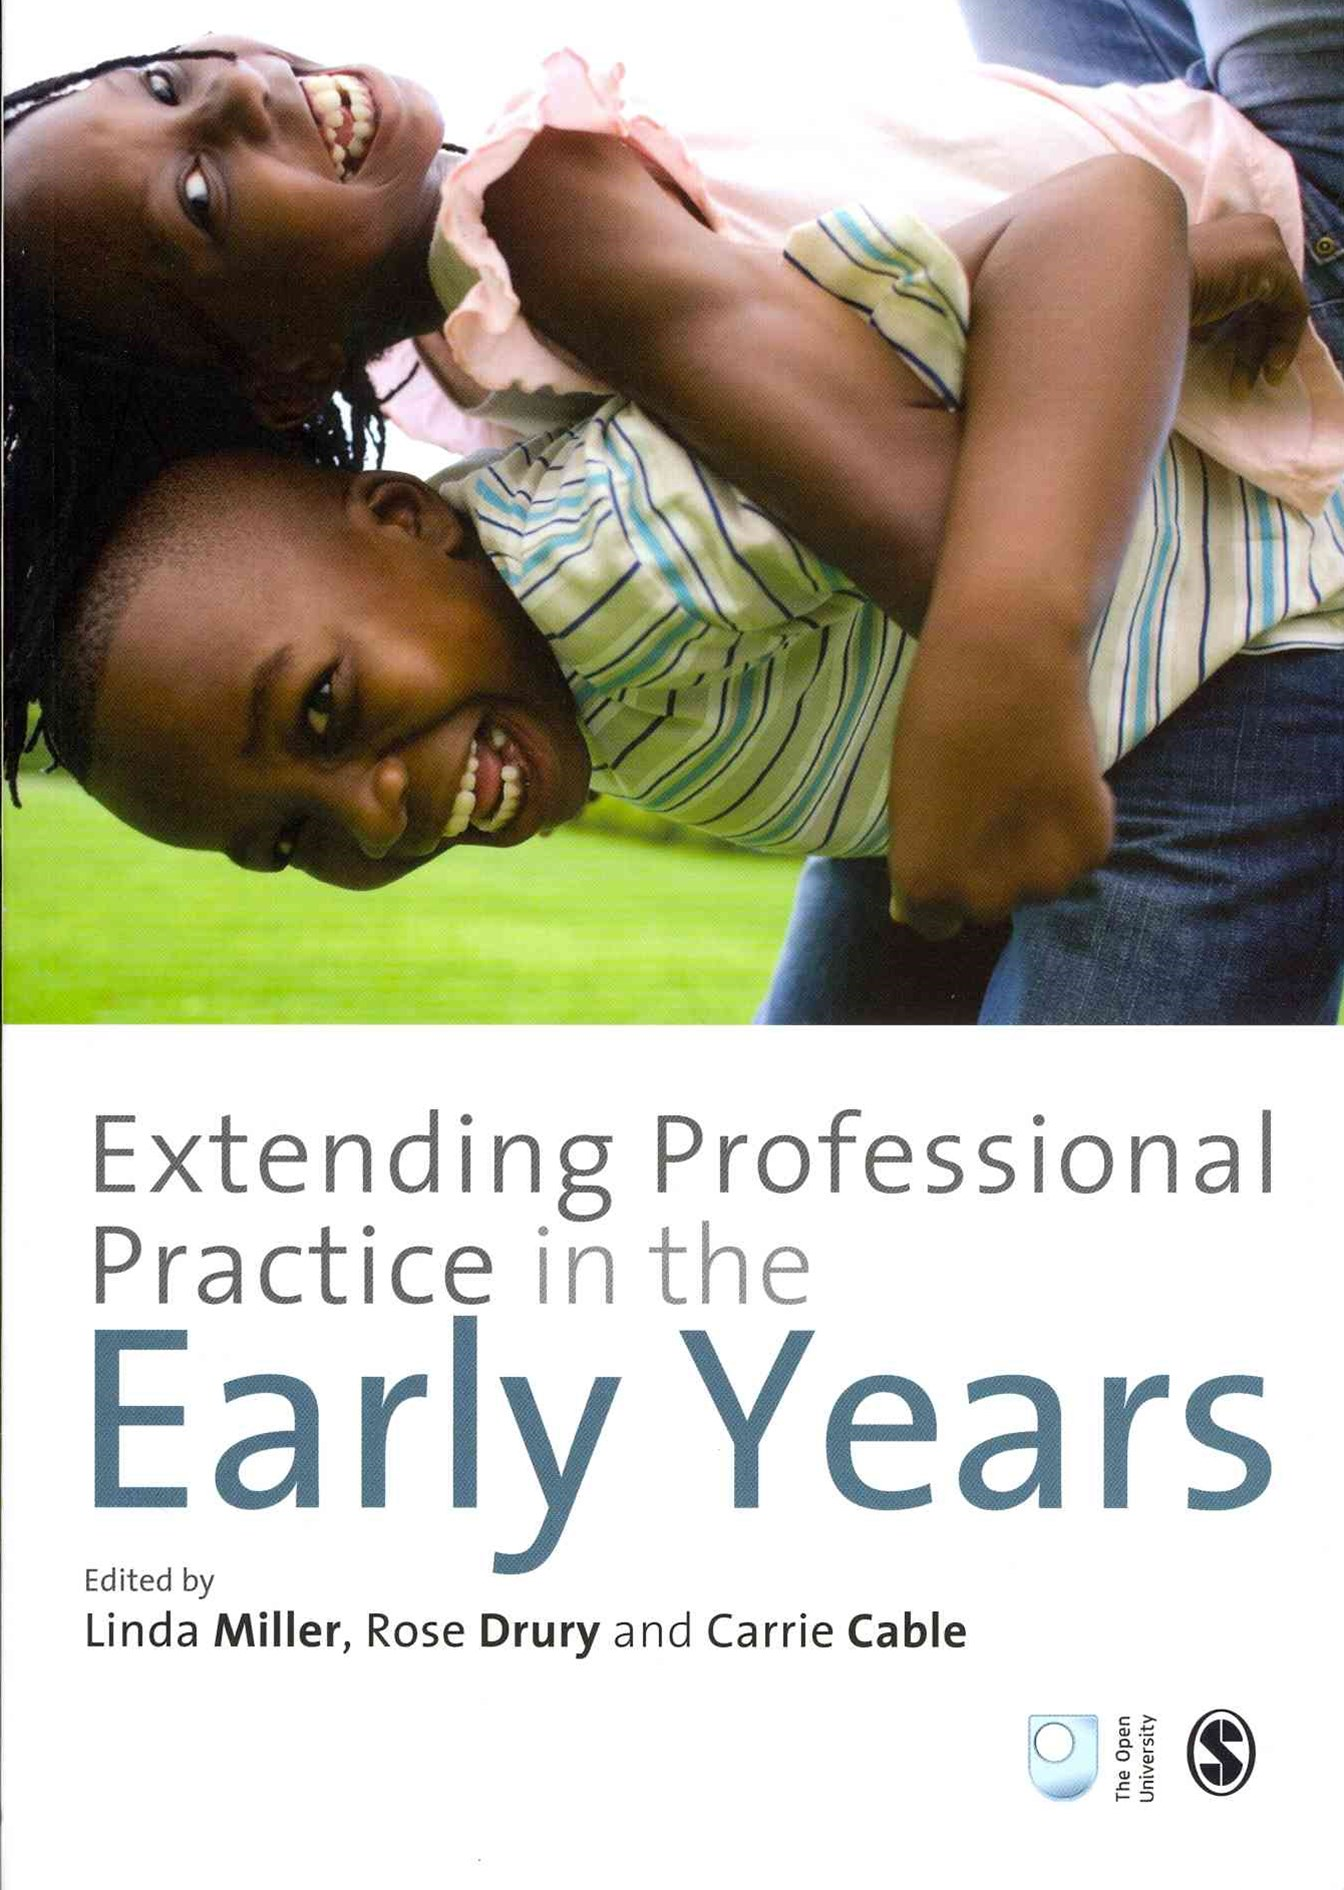 Extending Professional Practice in the Early Years